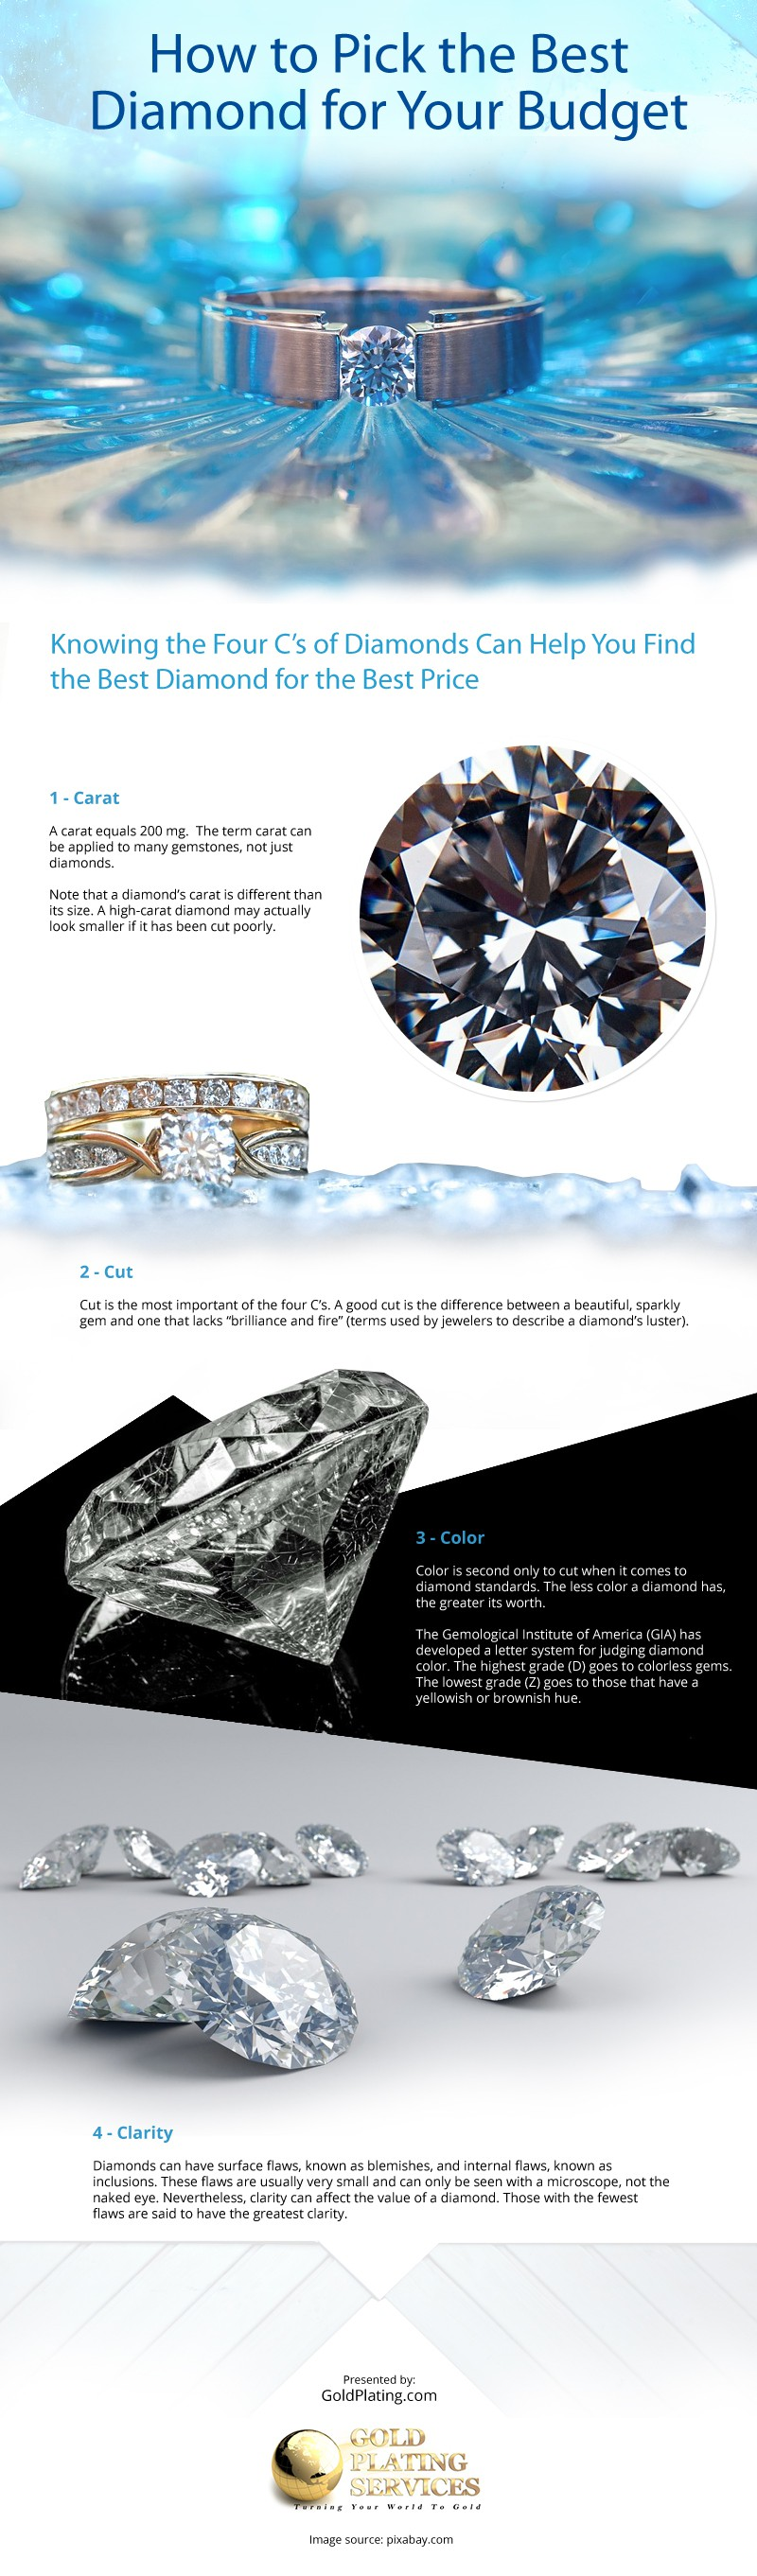 How to Pick the Best Diamond for your Budget